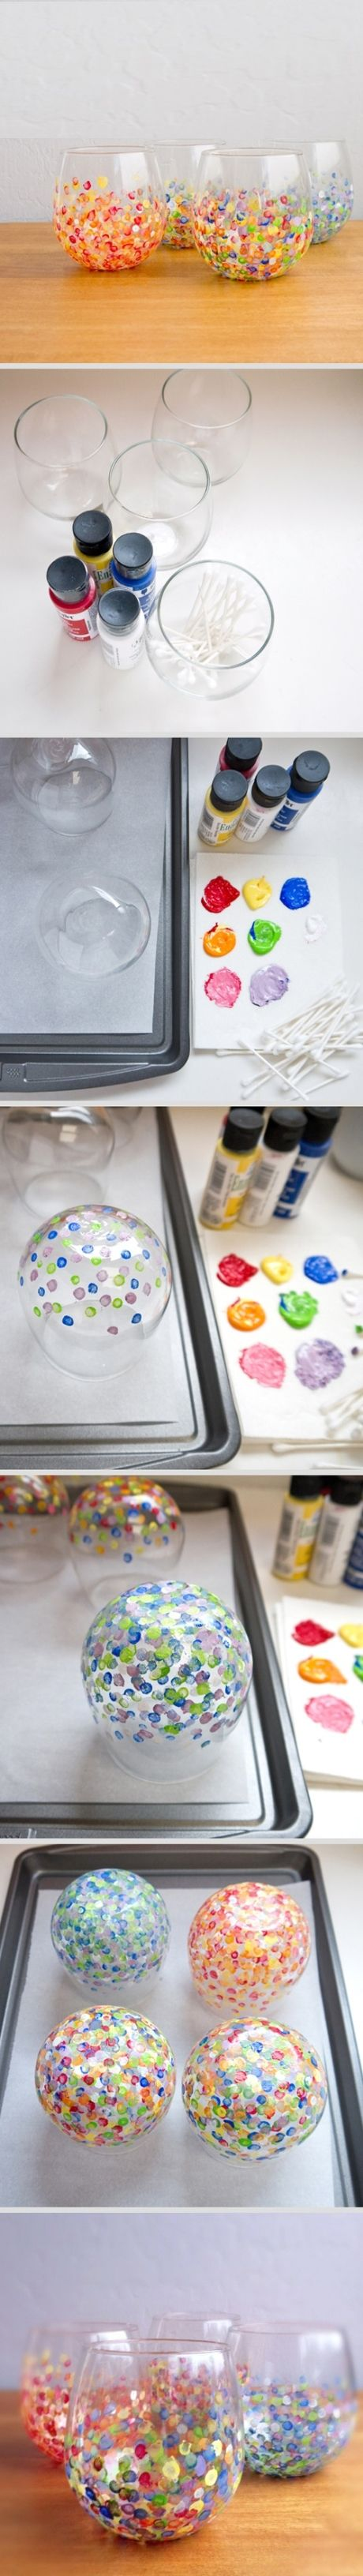 15 DIY Crafts You Need To Make Right Now | Student Beans